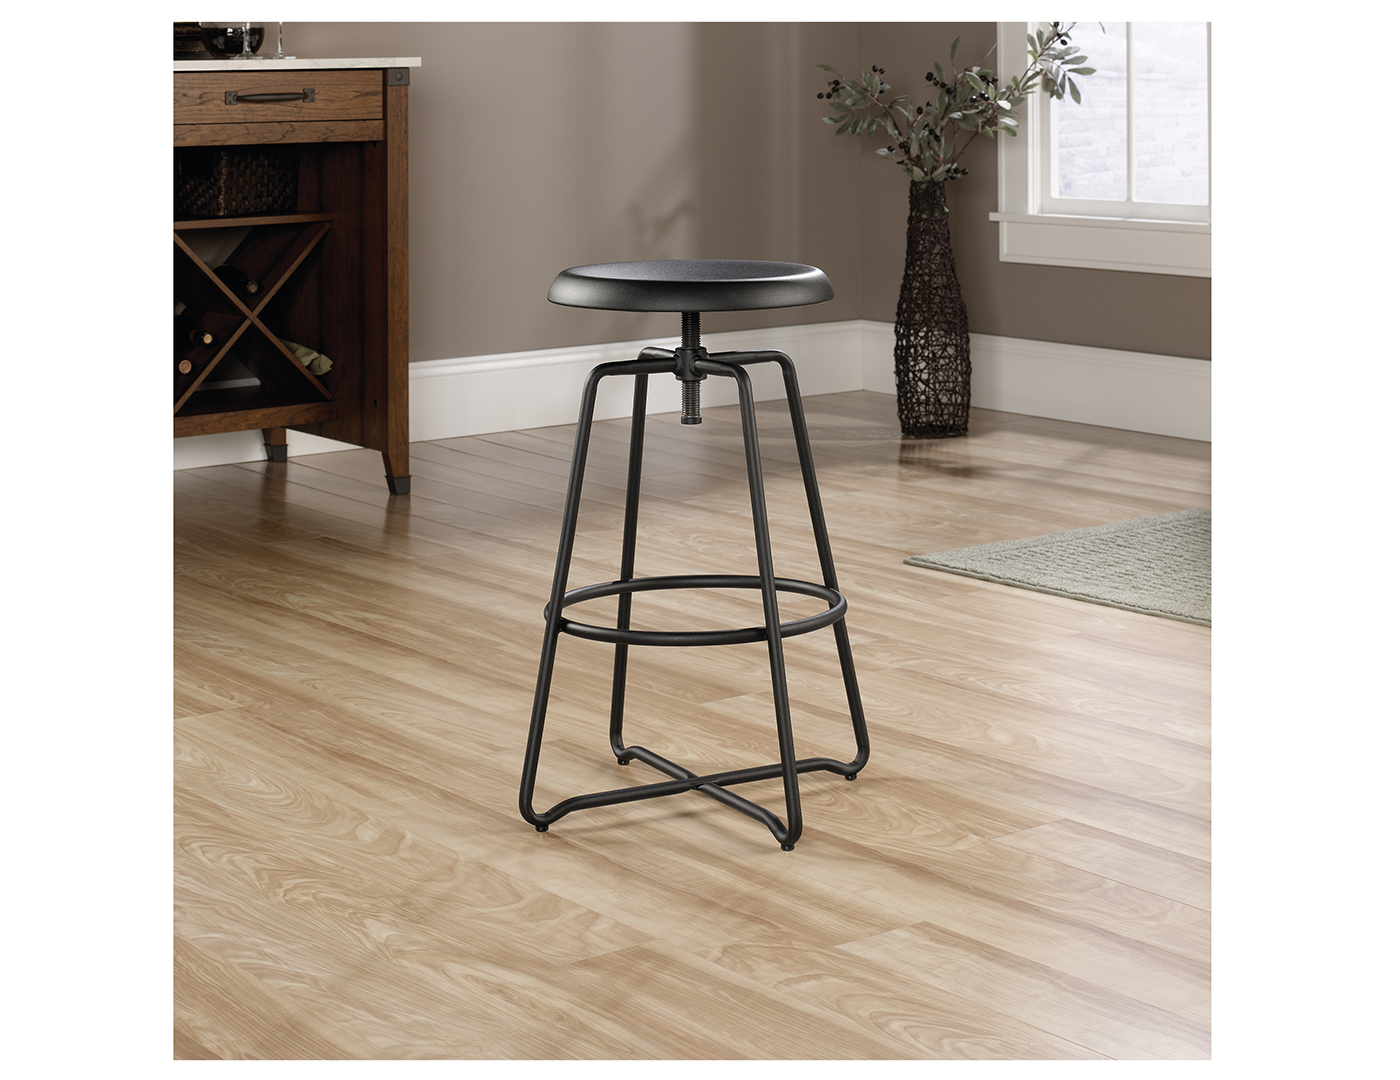 Carson Forge Adjustable Stool